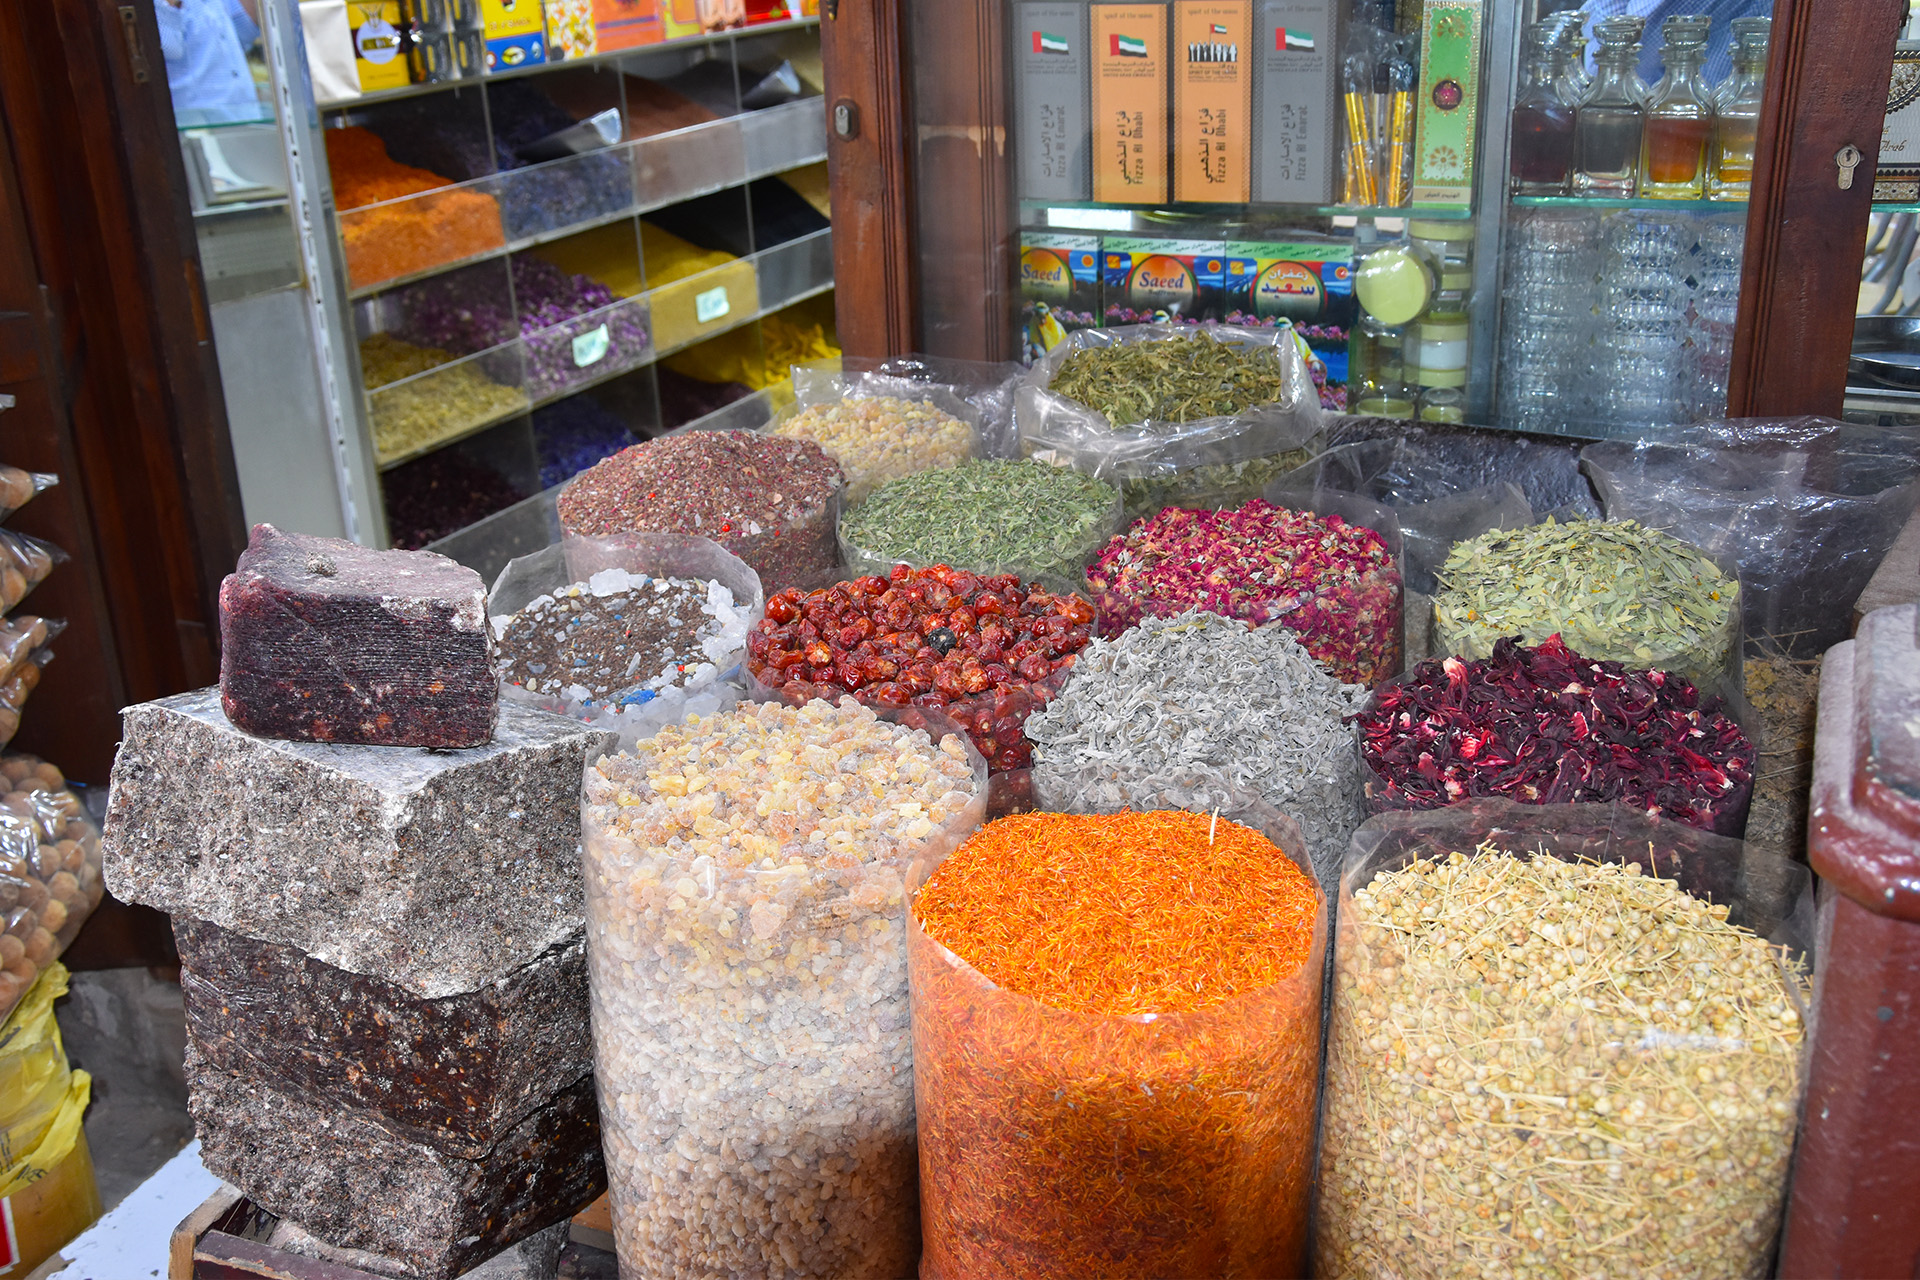 The Spice Souk in Dubai